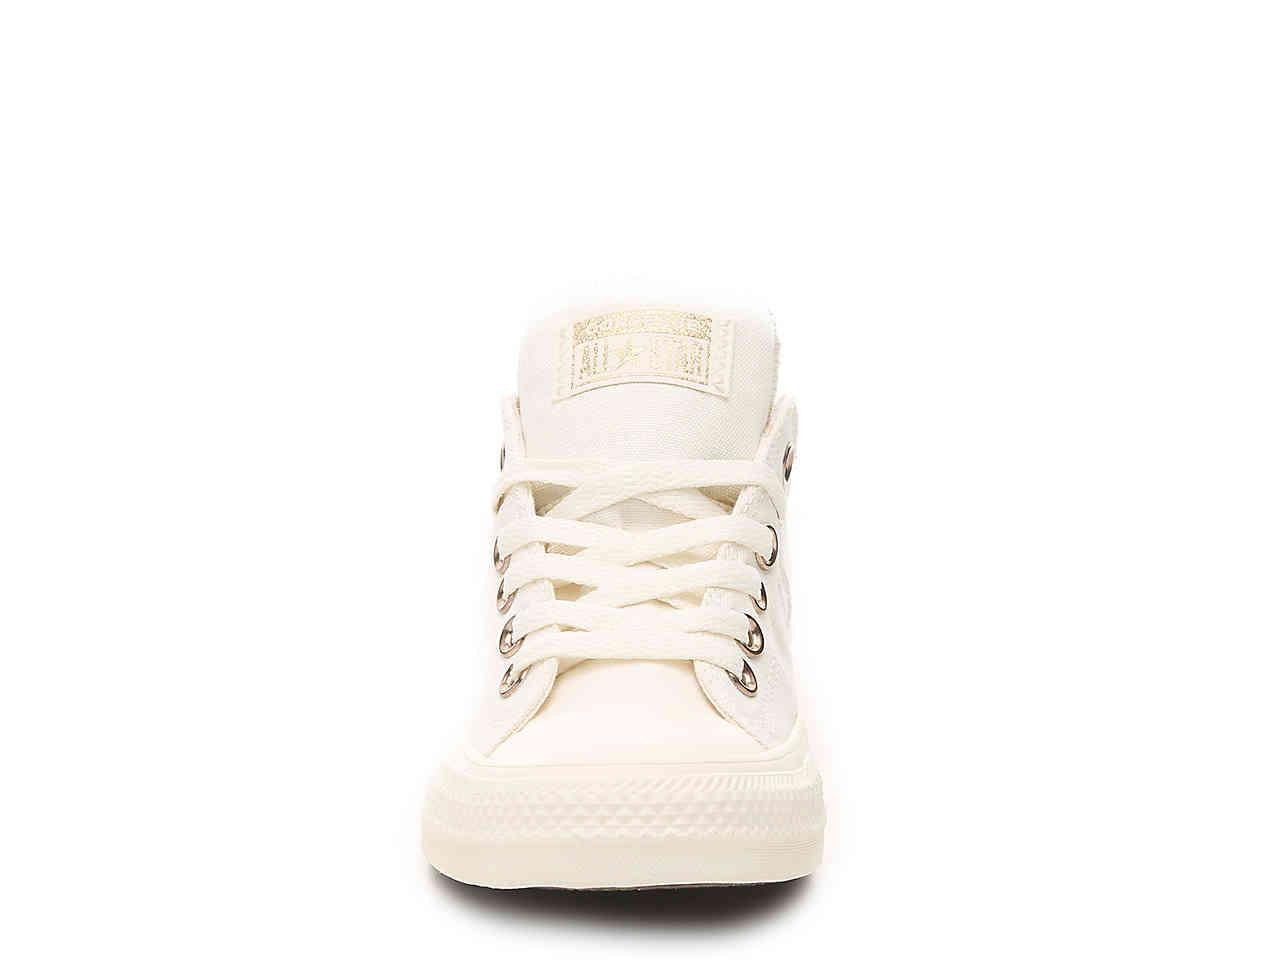 47b306a0942 Converse - White Chuck Taylor All Star Madison Sneaker - Lyst. View  fullscreen